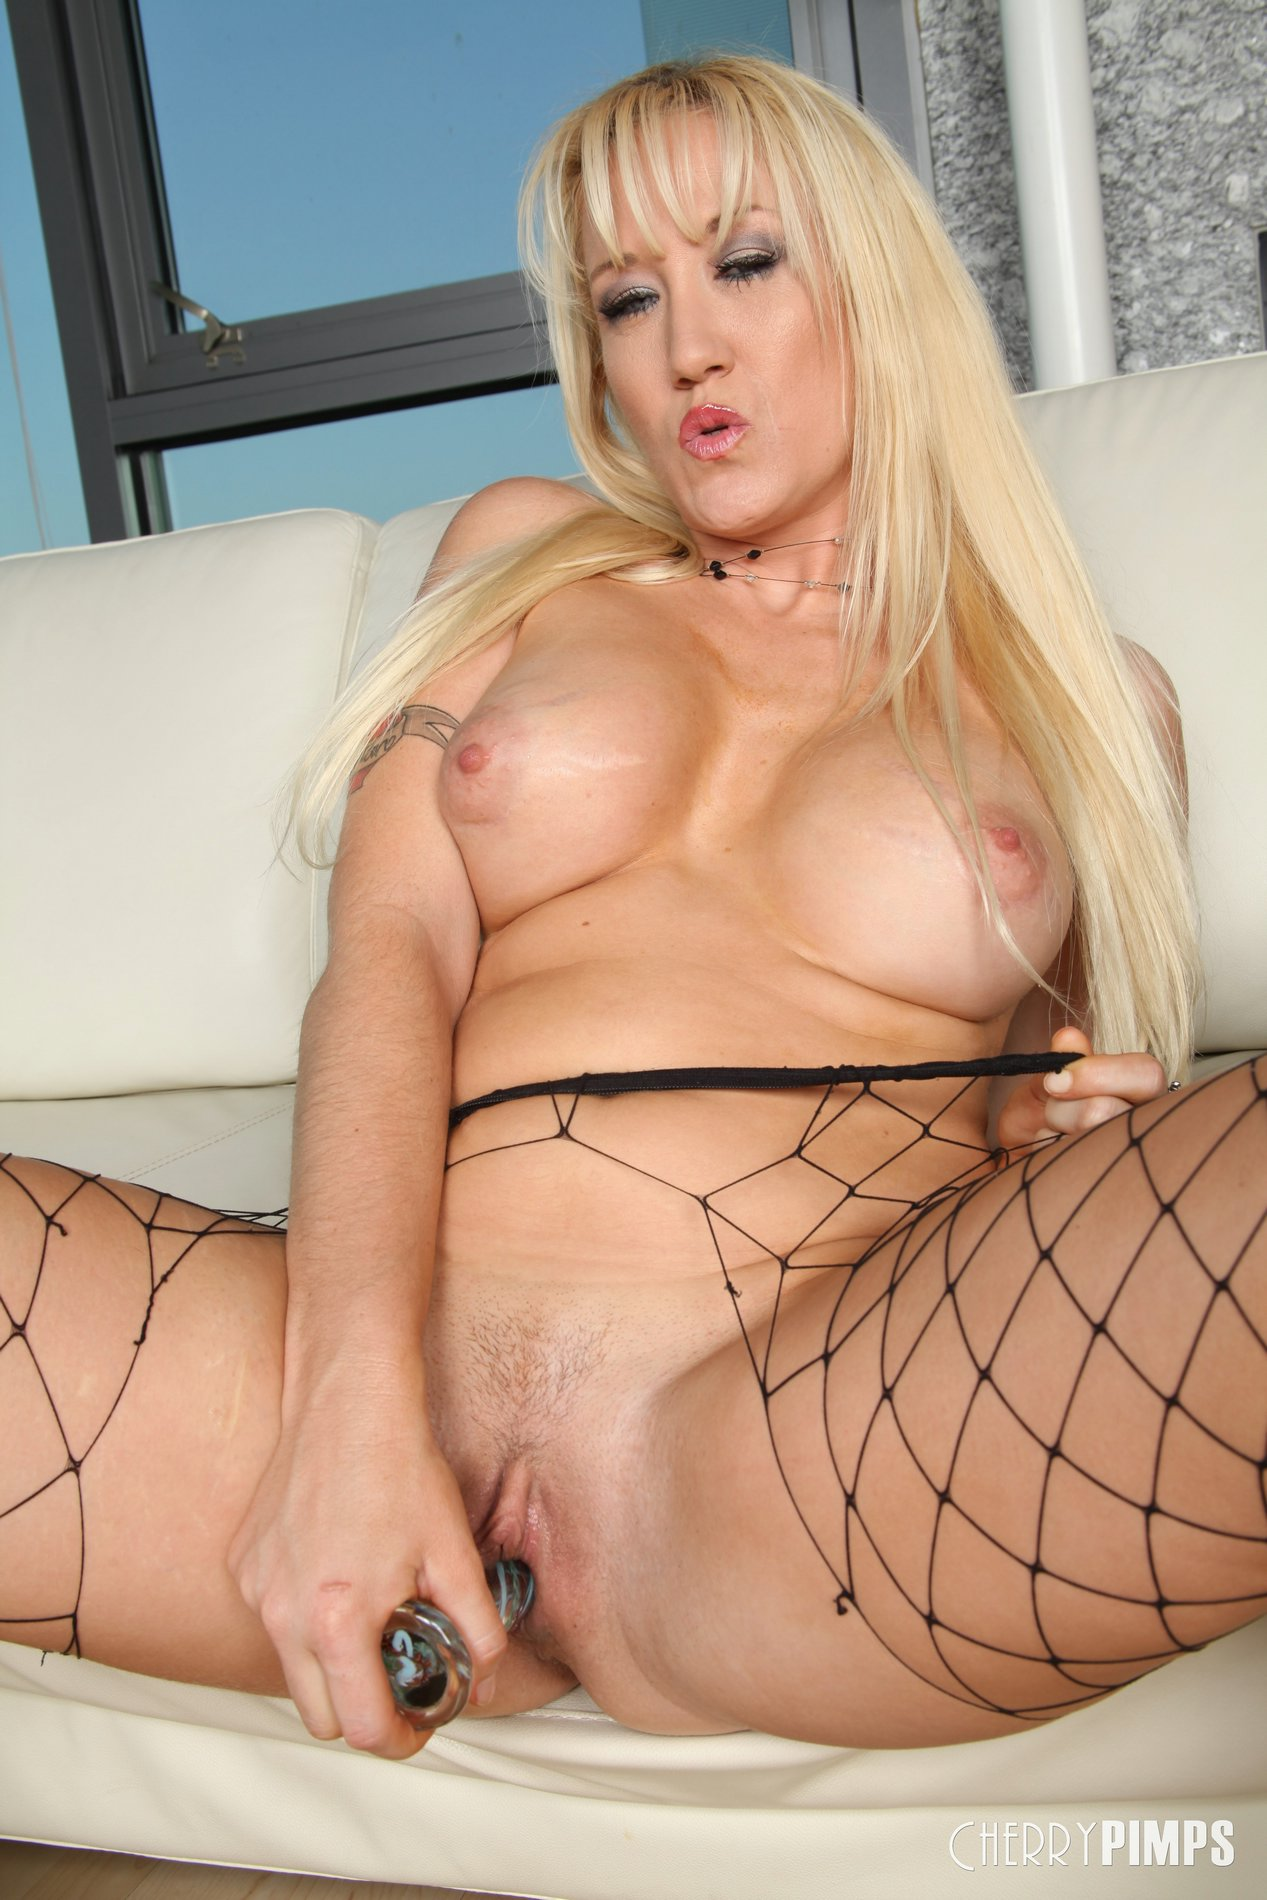 Precisely does pornstar alana evans interracial gangbang blonde And have